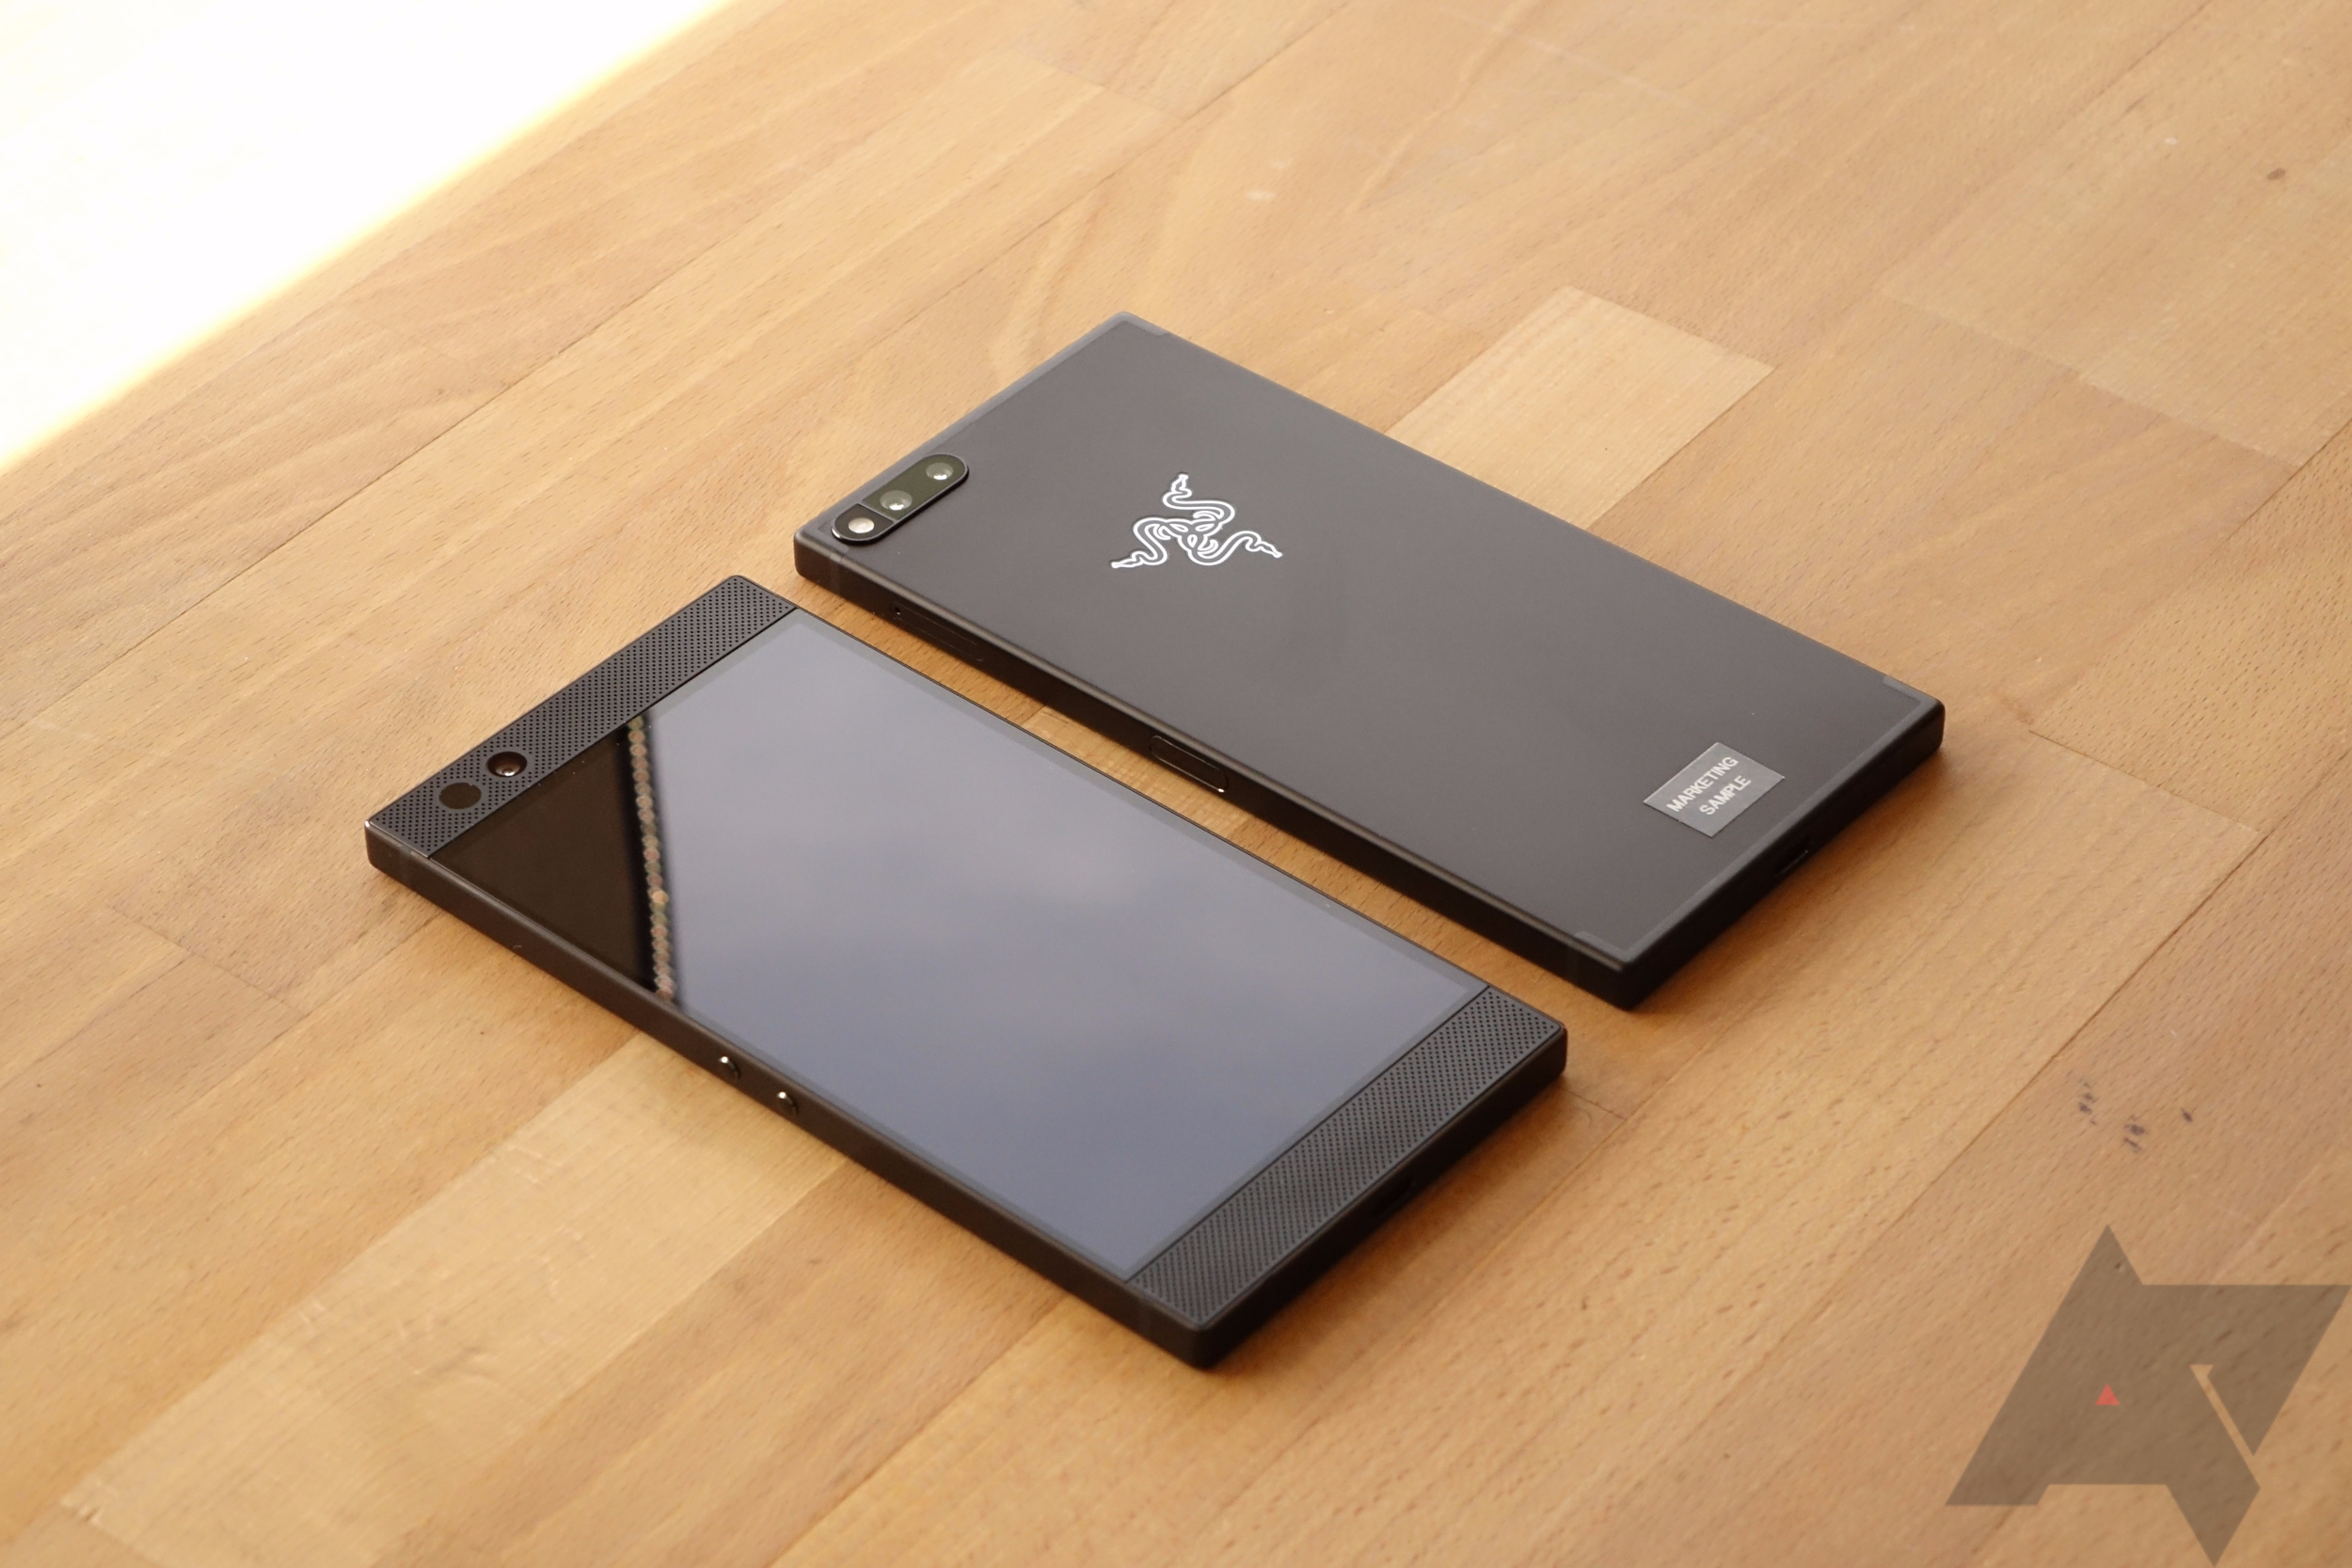 Razer Phone updated with improved camera and audio performance